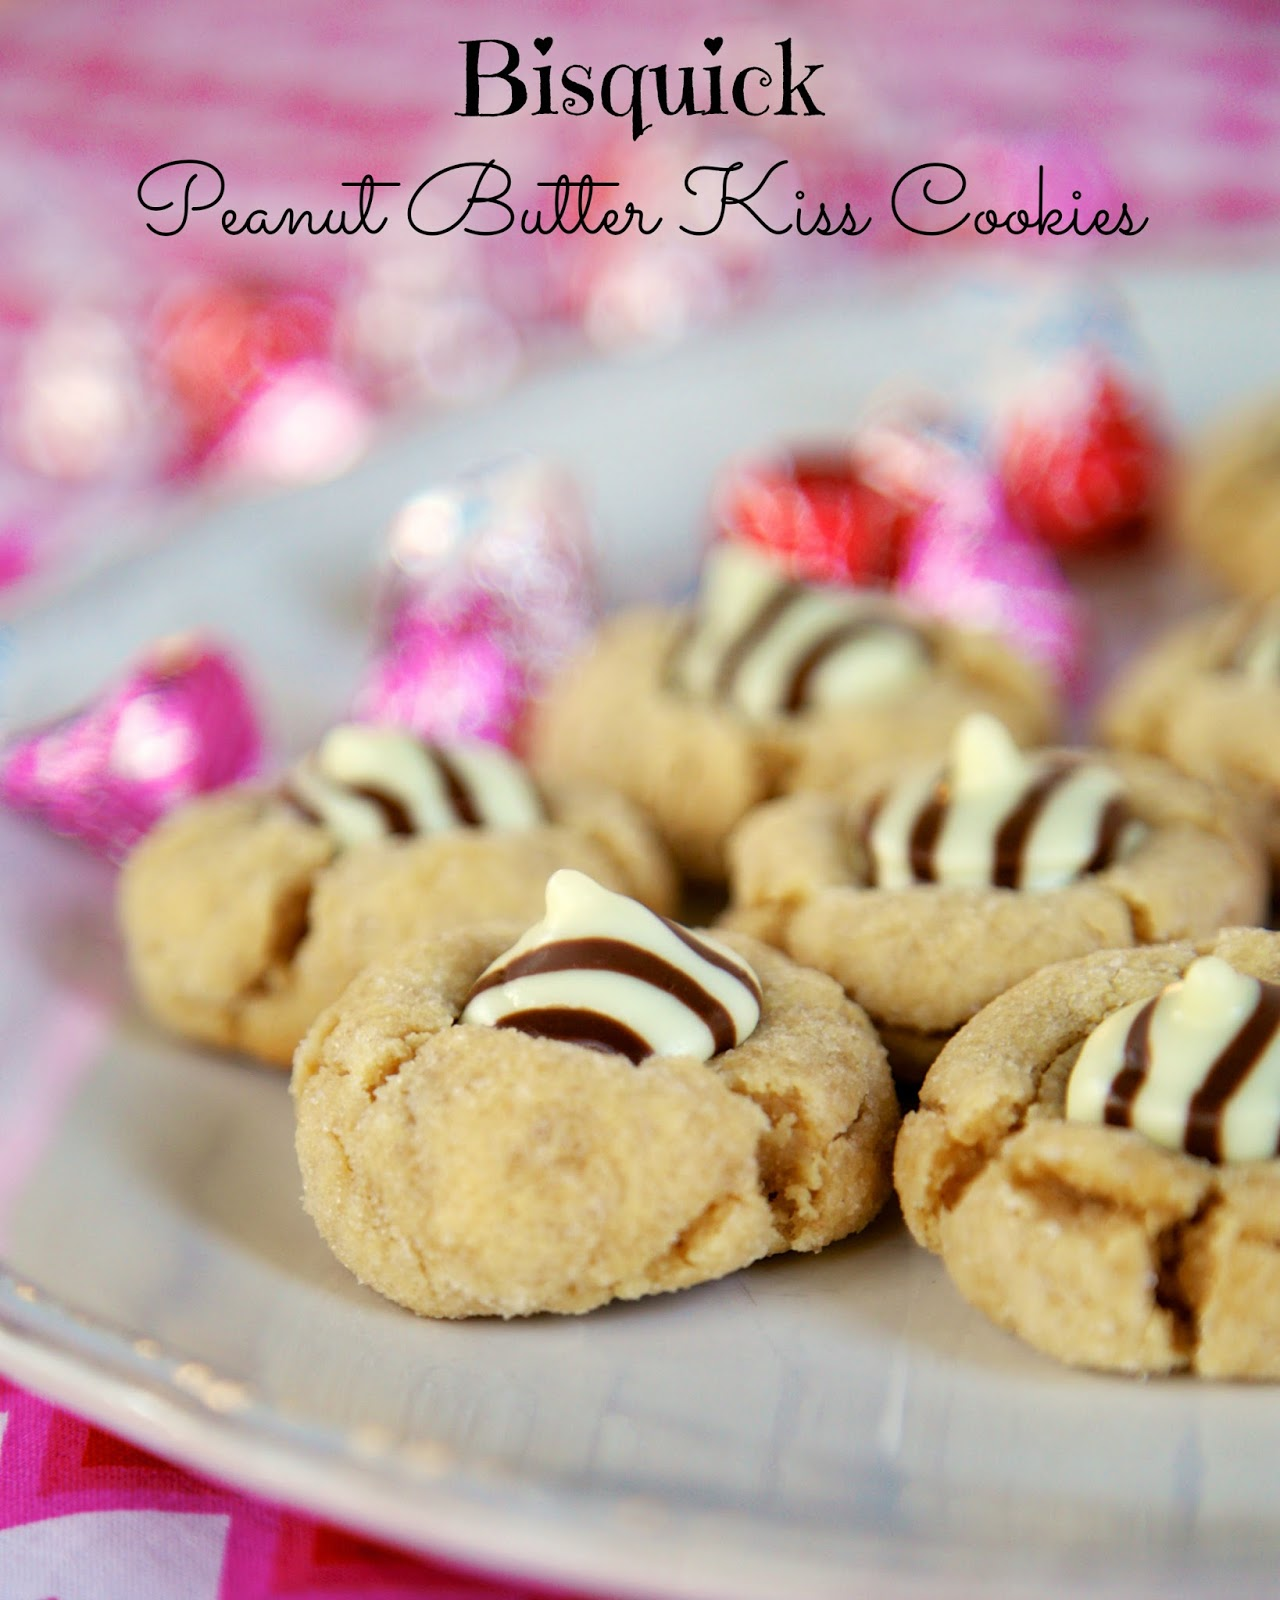 Bisquick Peanut Butter Cookies - seriously the BEST peanut butter cookies! Peanut butter, sweetened condensed milk, Bisquick, vanilla. Top cookies with a chocolate kiss immediately after taking out of the oven. Always gone in a flash!